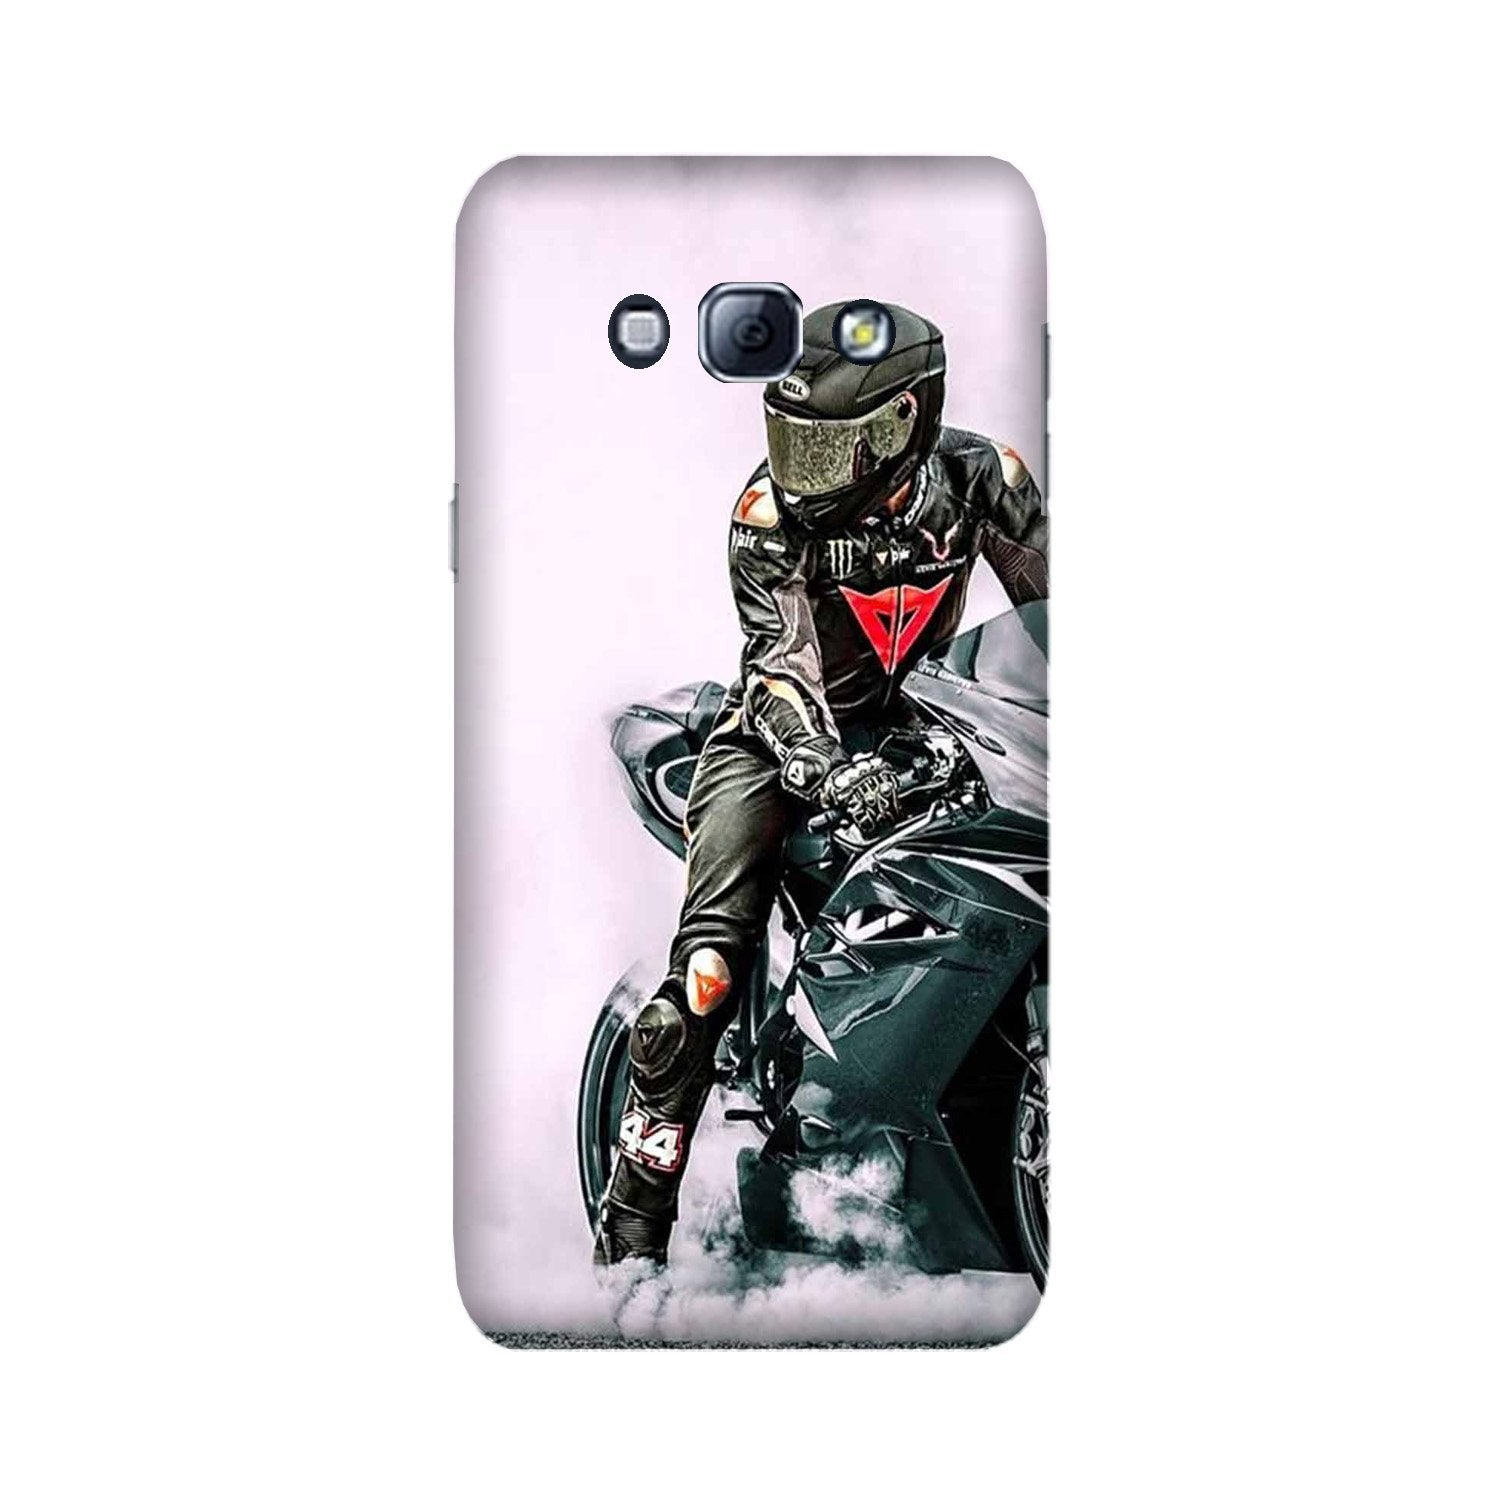 Biker Mobile Back Case for Galaxy A8 (2015)  (Design - 383)